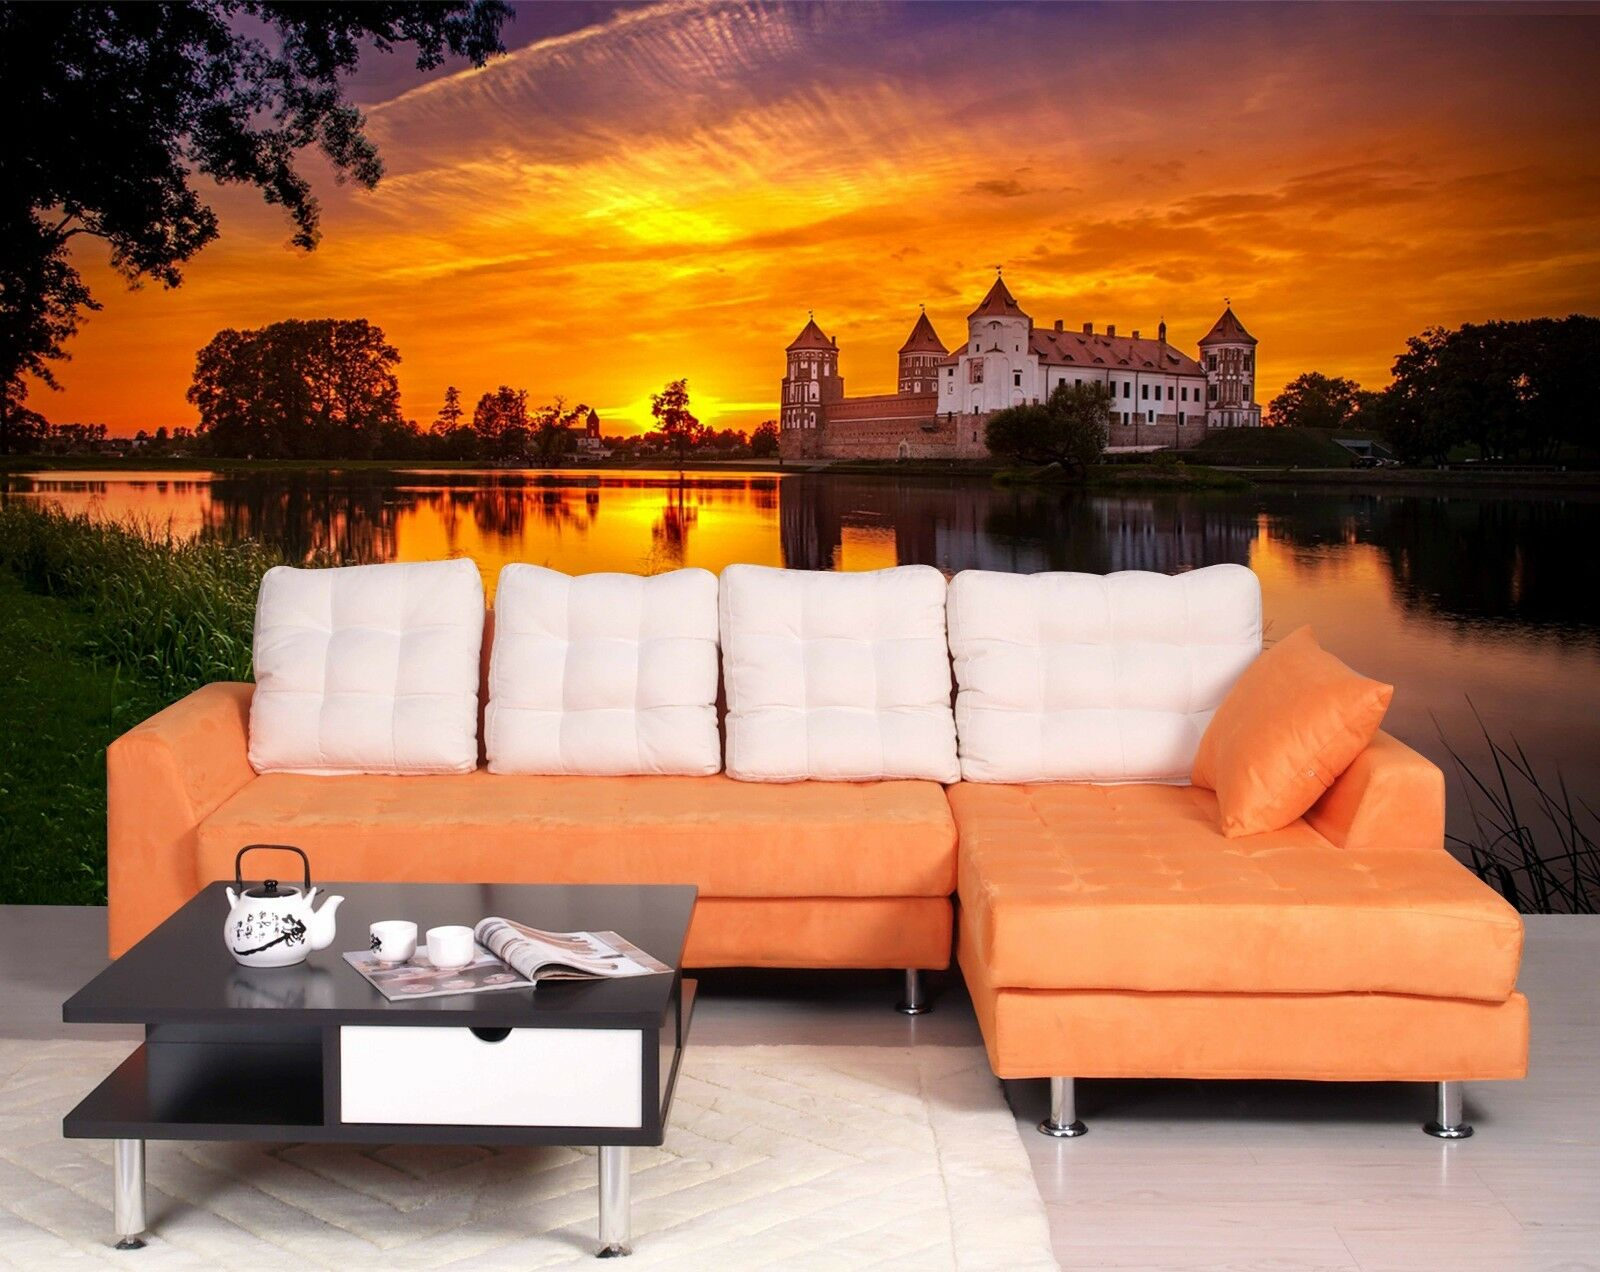 3D Sunset House 5 Wallpaper Murals Wall Print Wallpaper Mural AJ WALL AU Lemon